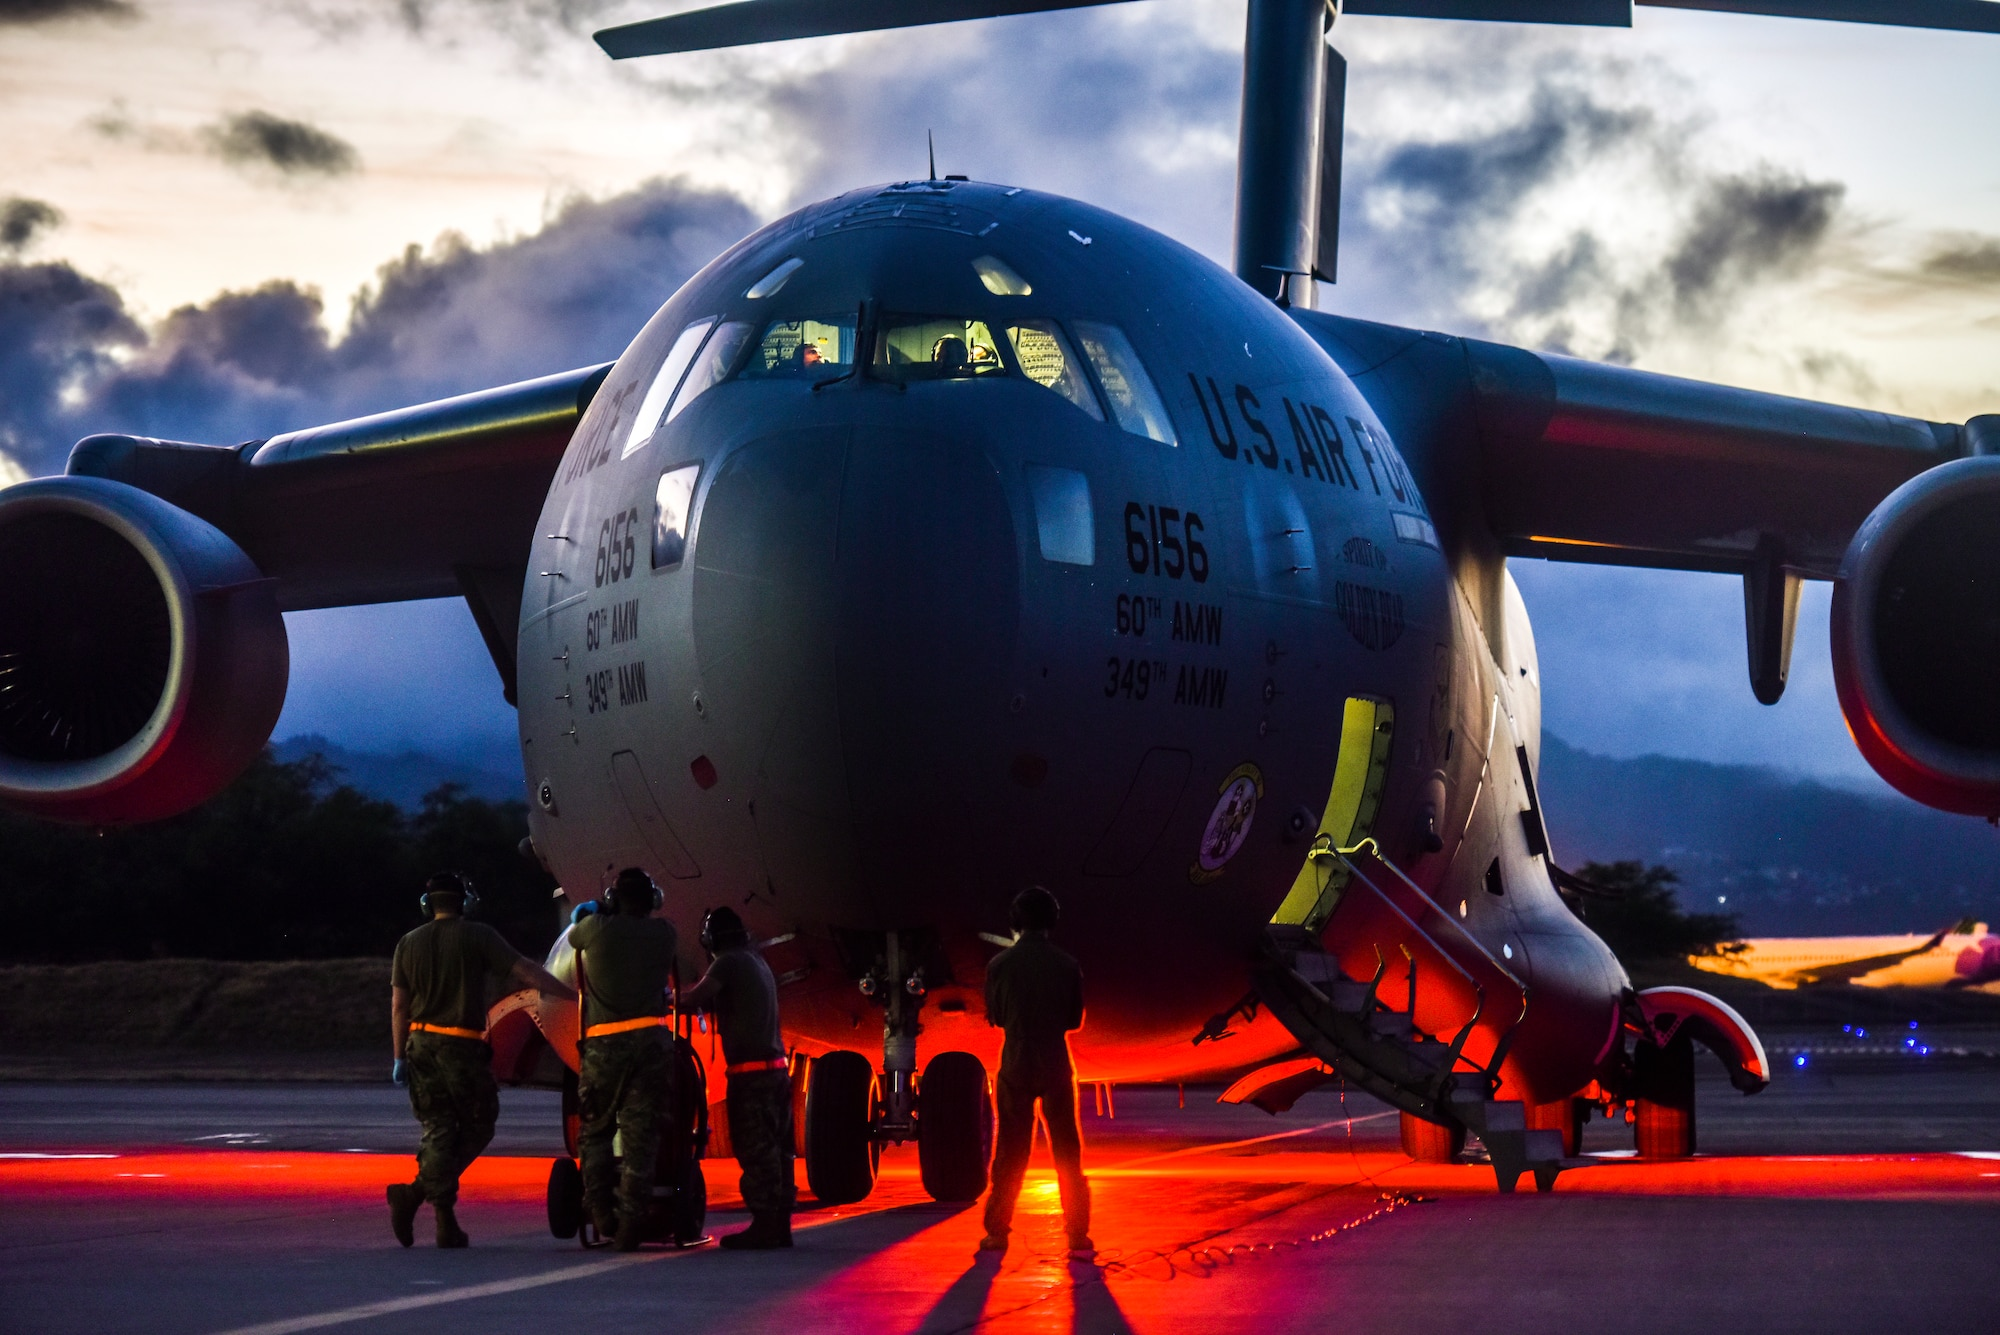 Airmen from the 735th Air Mobility Squadron support a Transport Isolation System operation at Joint Base Pearl-Harbor Hickam, Hawaii, July 17, 2020. Several U.S. Air Force units came together to rapidly deploy the bio-containment capability for the first time in the Indo-Pacific theater in support of a COVID-19 aeromedical evacuation mission. The TIS is an infectious disease containment unit designed to minimize contamination risk to aircrew and medical attendants, while allowing in-flight medical care for patients afflicted by a disease. (U.S. Air Force photo by Tech. Sgt. Anthony Nelson Jr.)